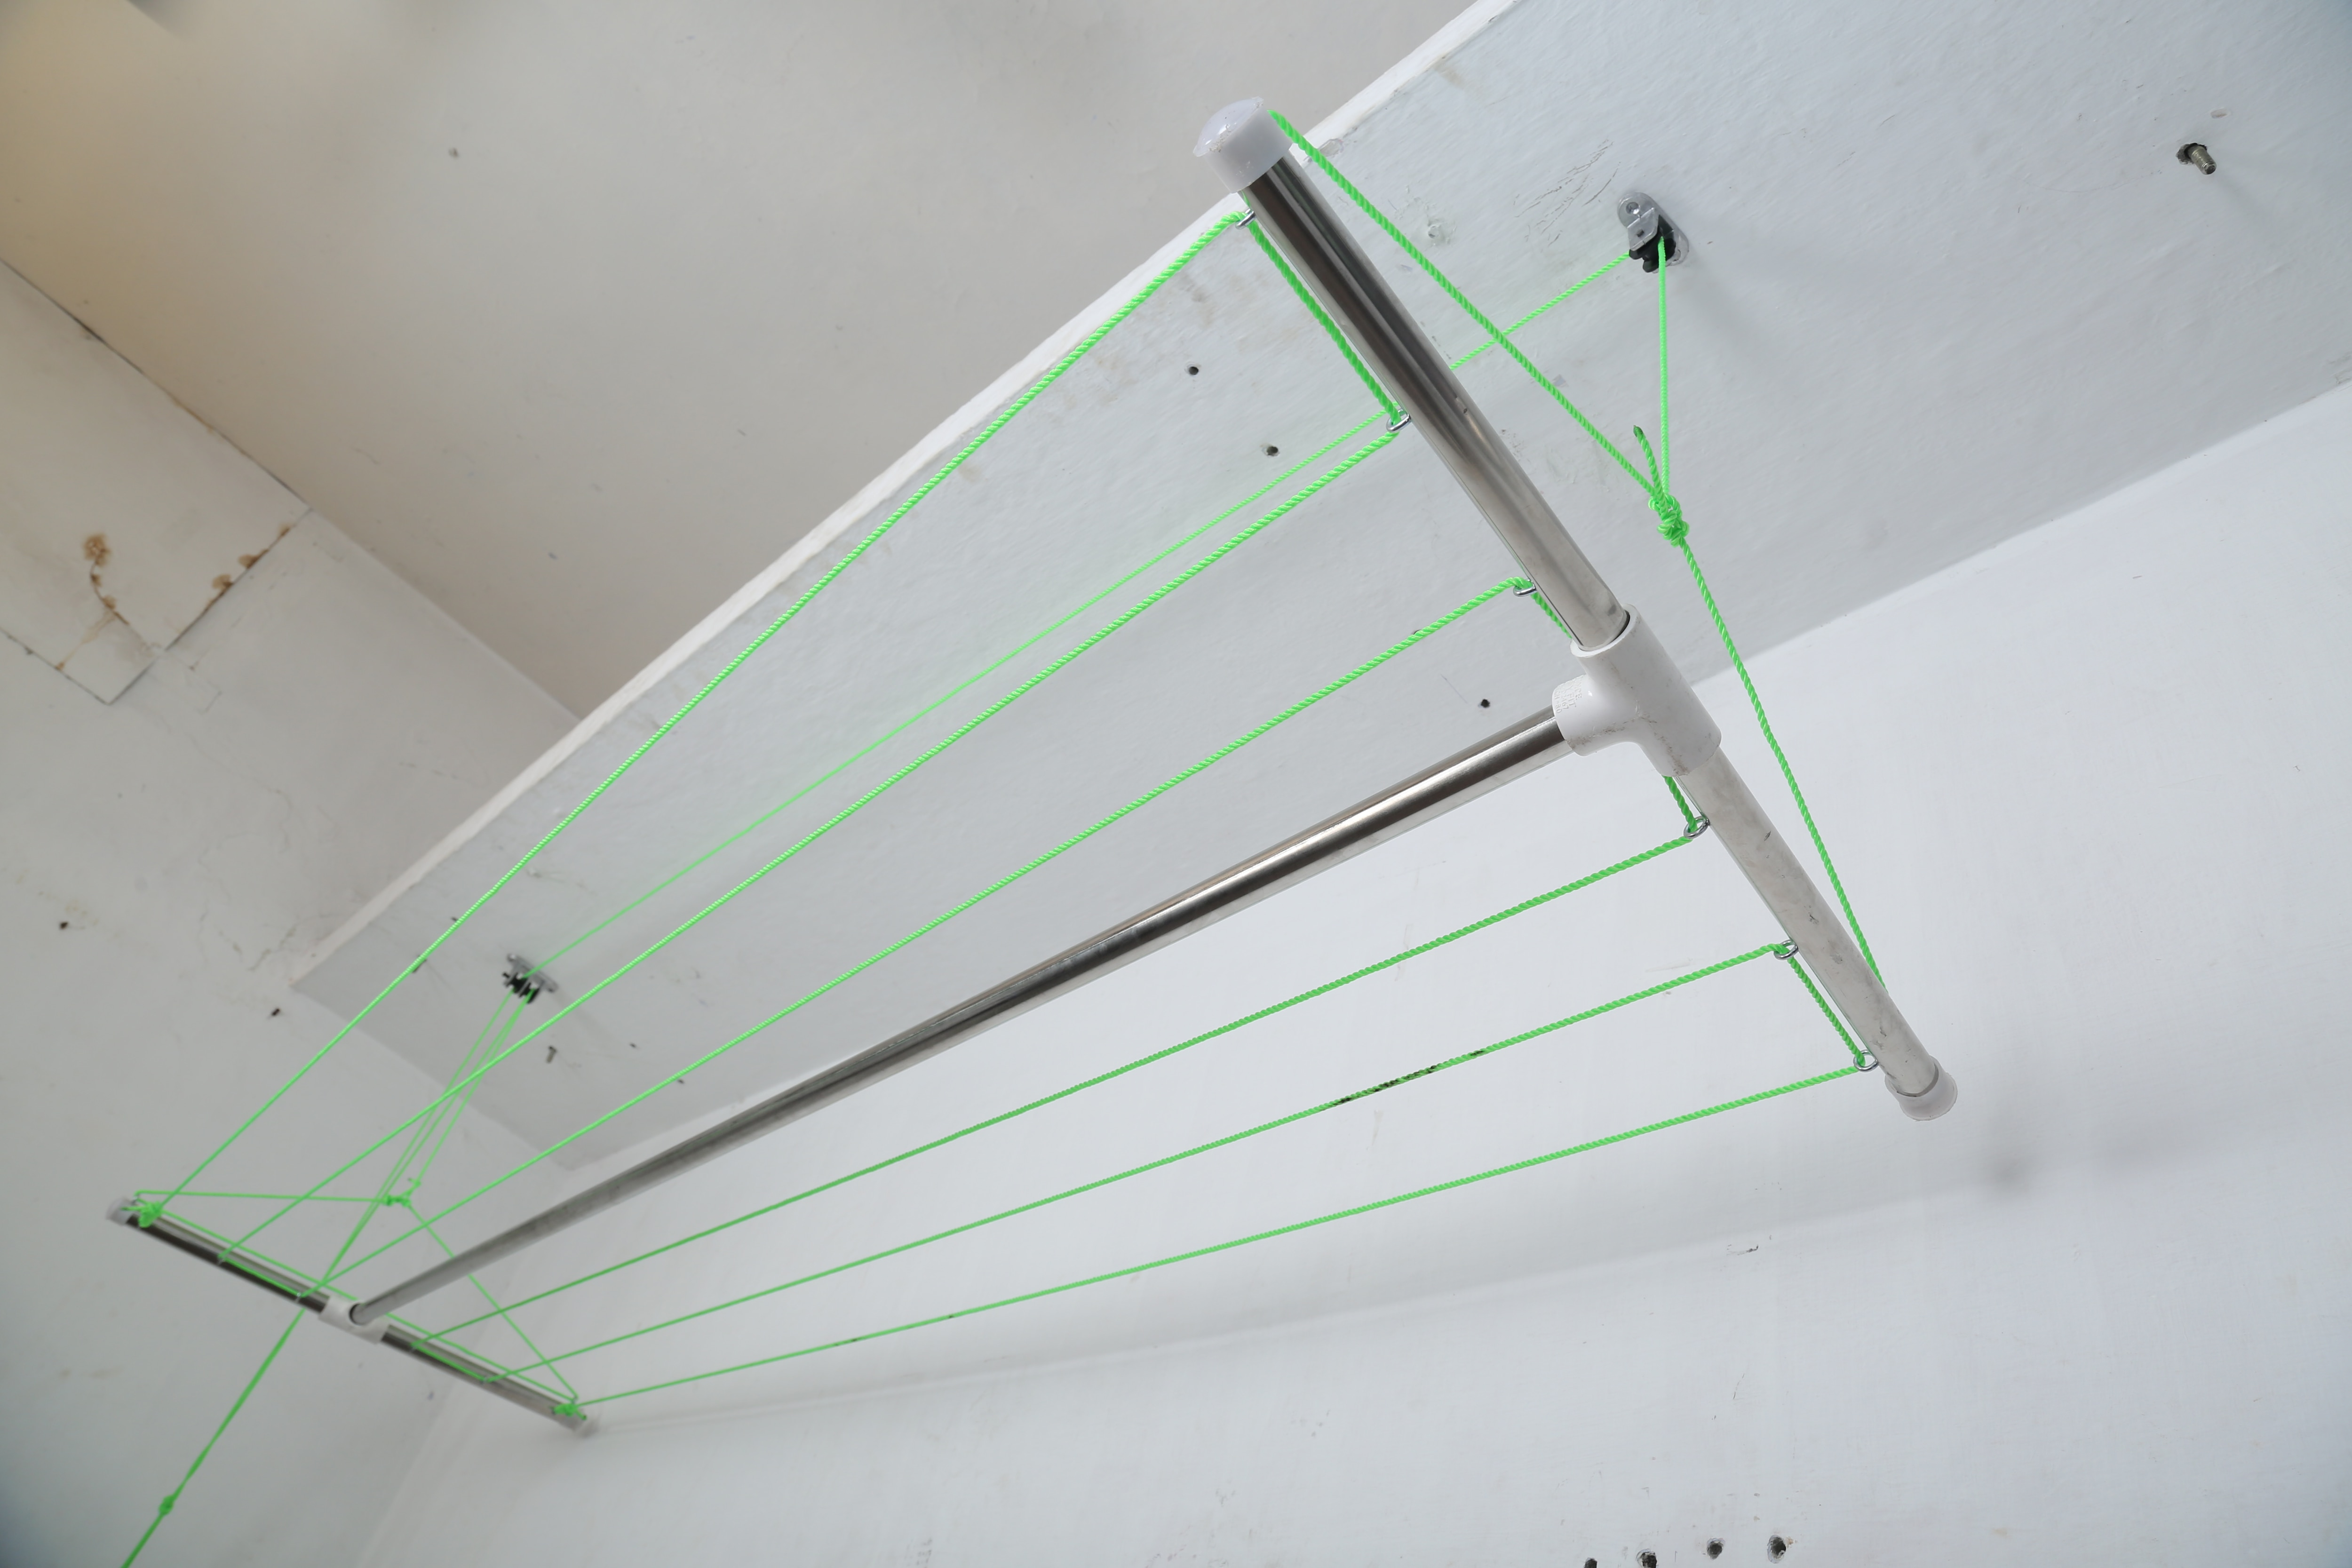 Apartments Balcony Hangers In Coimbatore   Apartments Balcony Hangers Stainless steel support frame.Apartments Balcony Hangers 6 mm Nylon hanging rope / SS pipe. Apartments Balcony Hangers Set of 6 row x 6 feet rope length.Apartments Balcony Hangers 36 feet drying length.